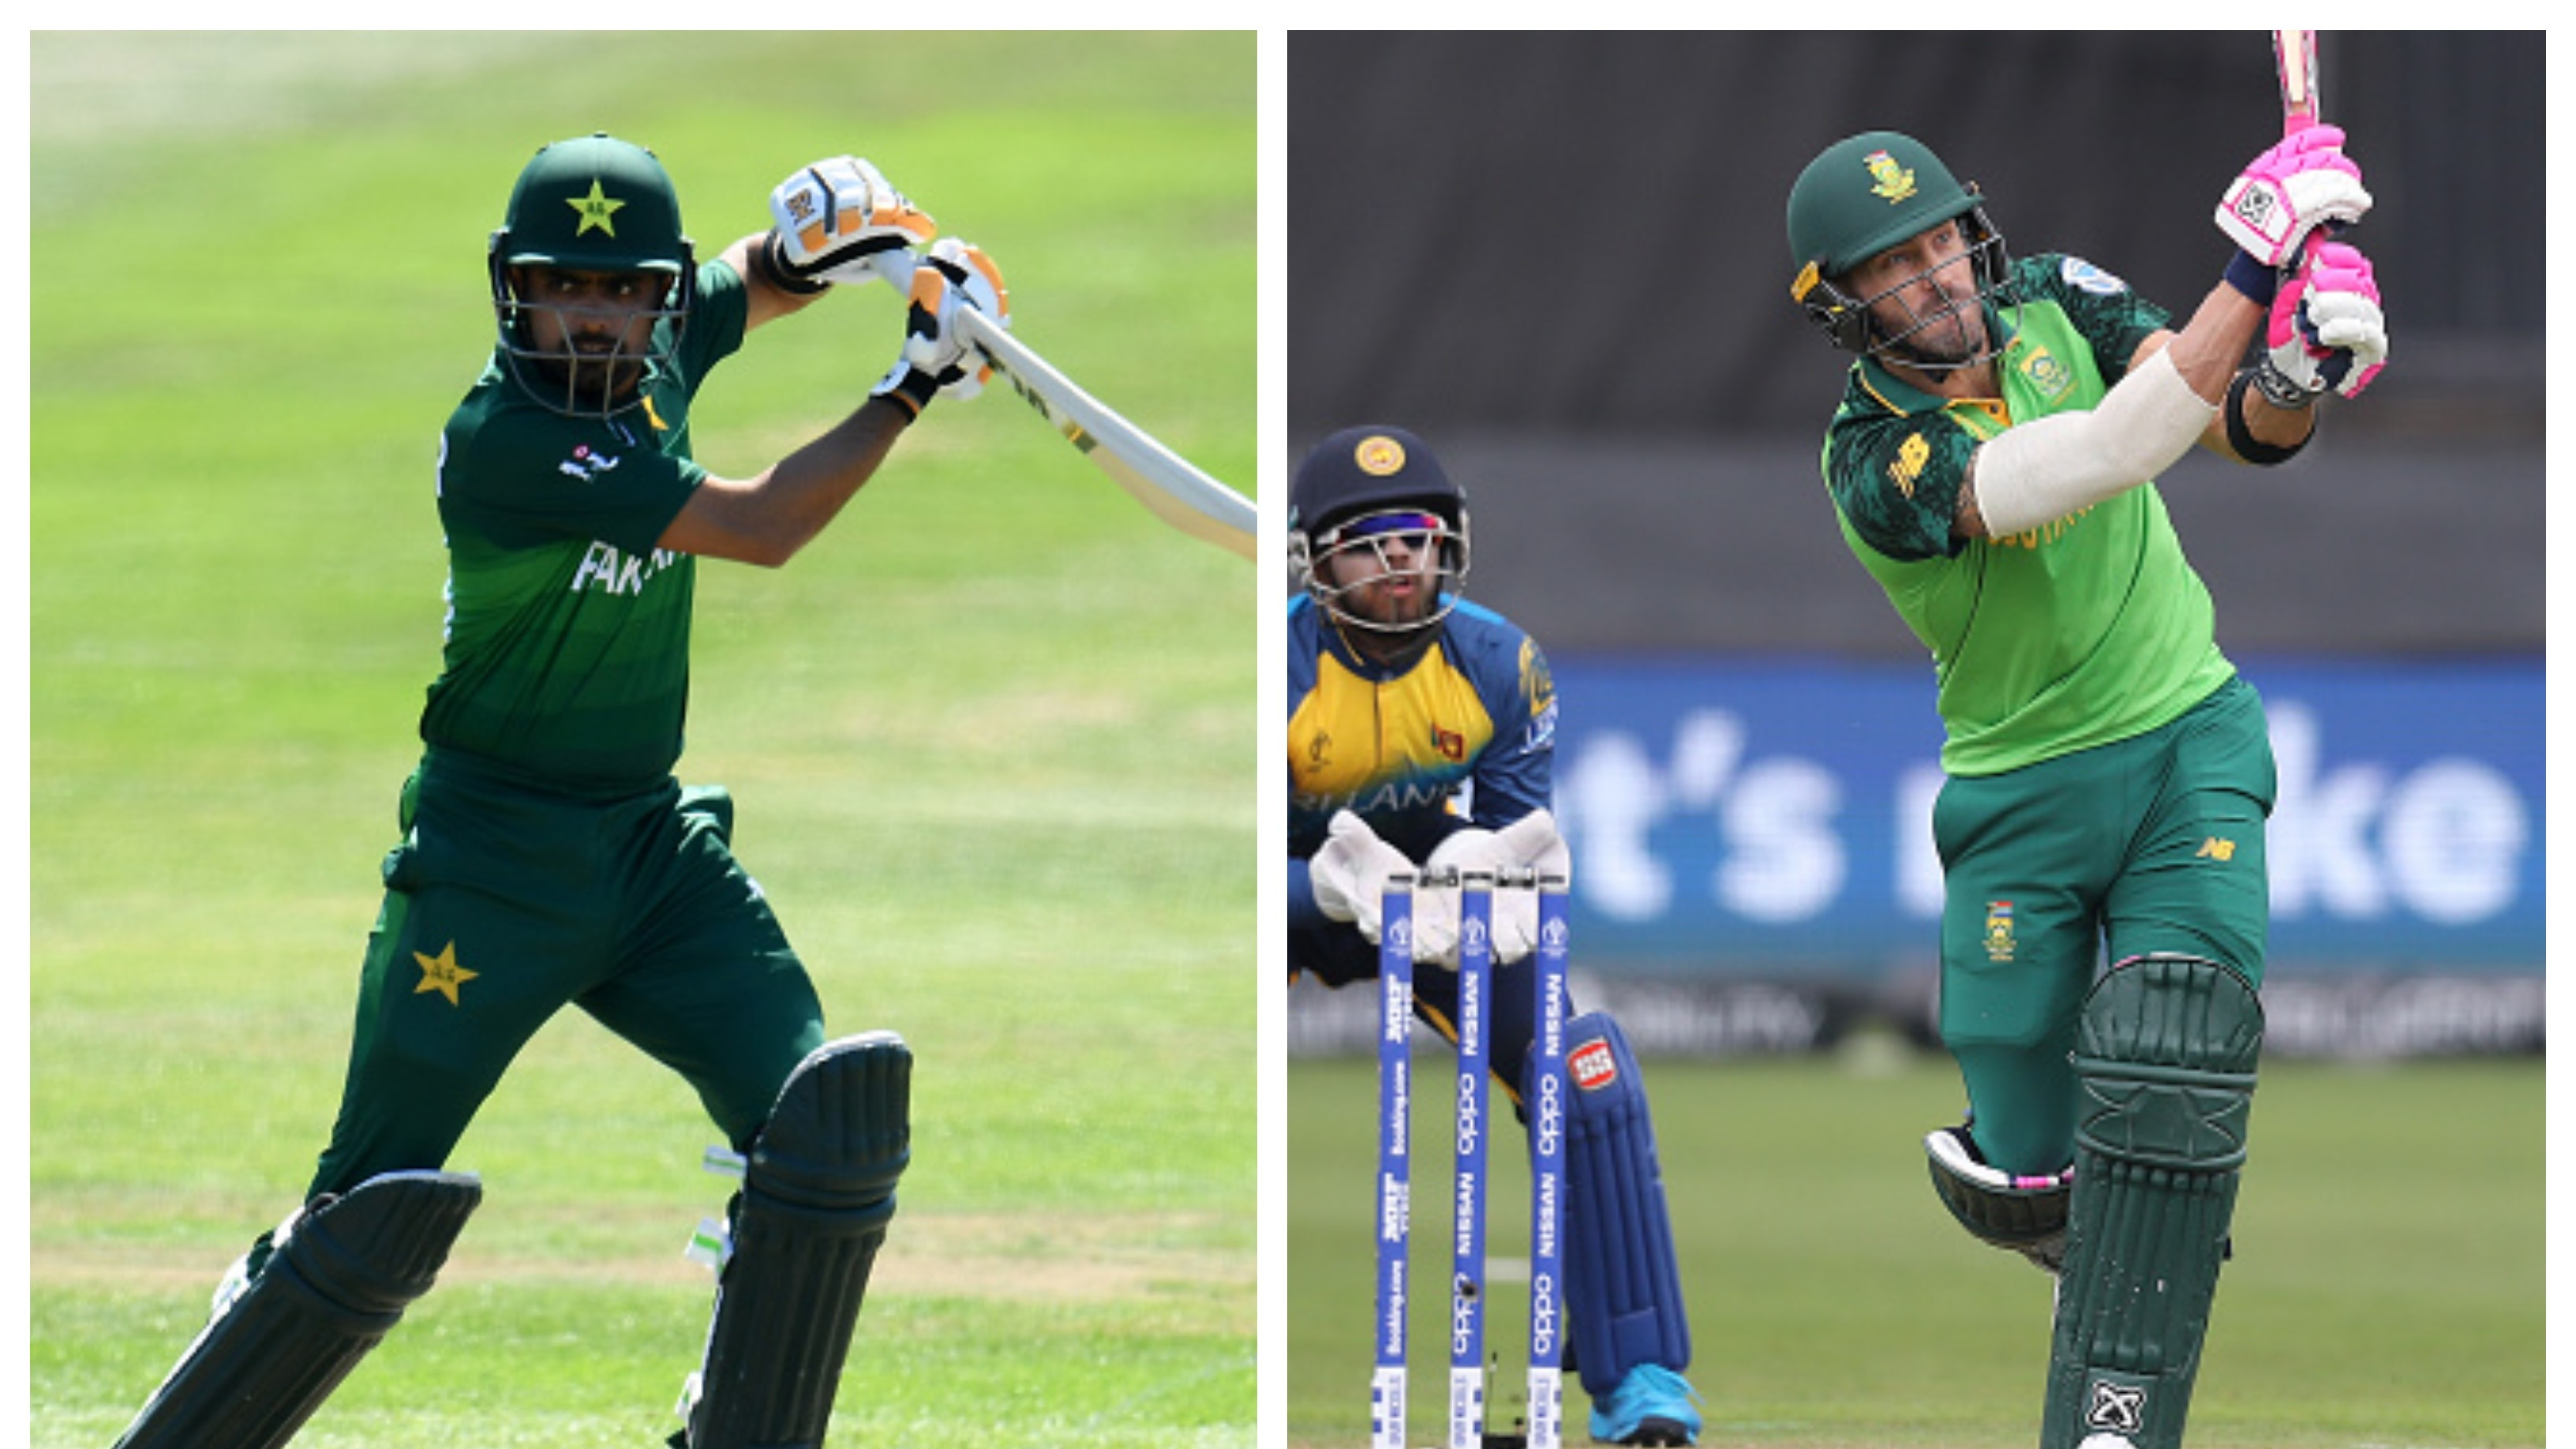 CWC 2019: Babar Azam's 112 powers Pakistan to 262, South Africa smash 338/7 versus Sri Lanka